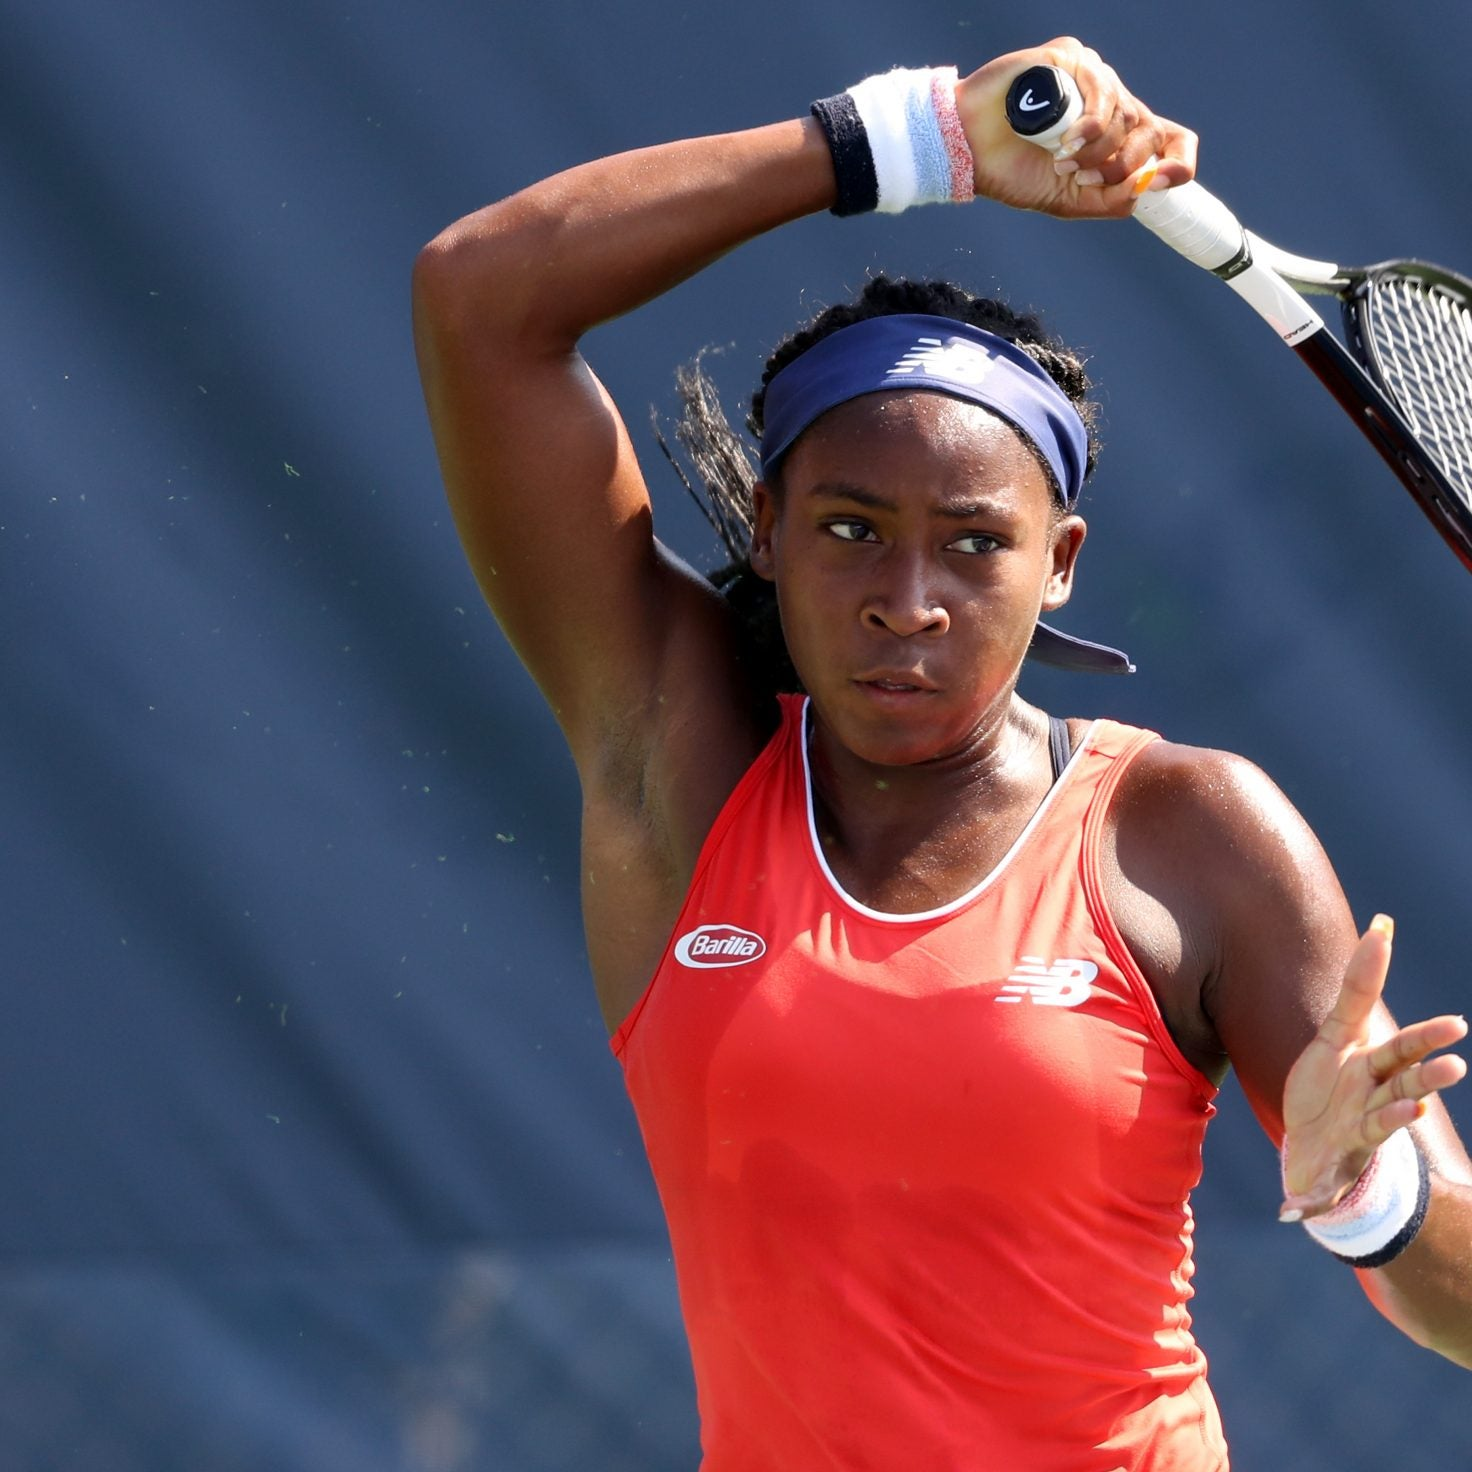 15-Year-Old Cori Gauff Given Wild Card Entry To US Open